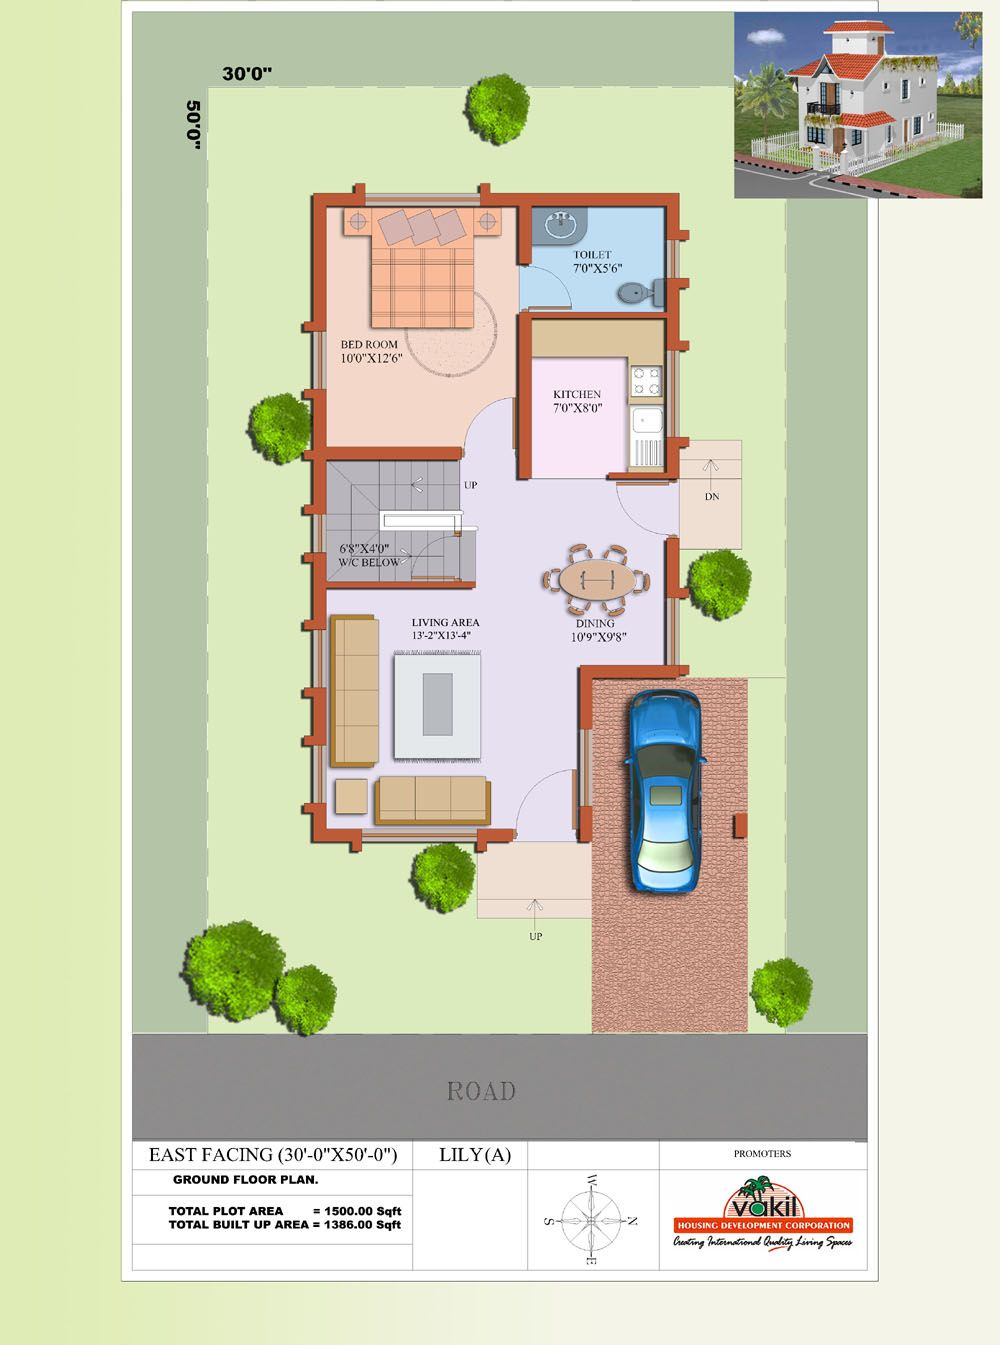 gallery of 1500sqr feet single floor low budget home with